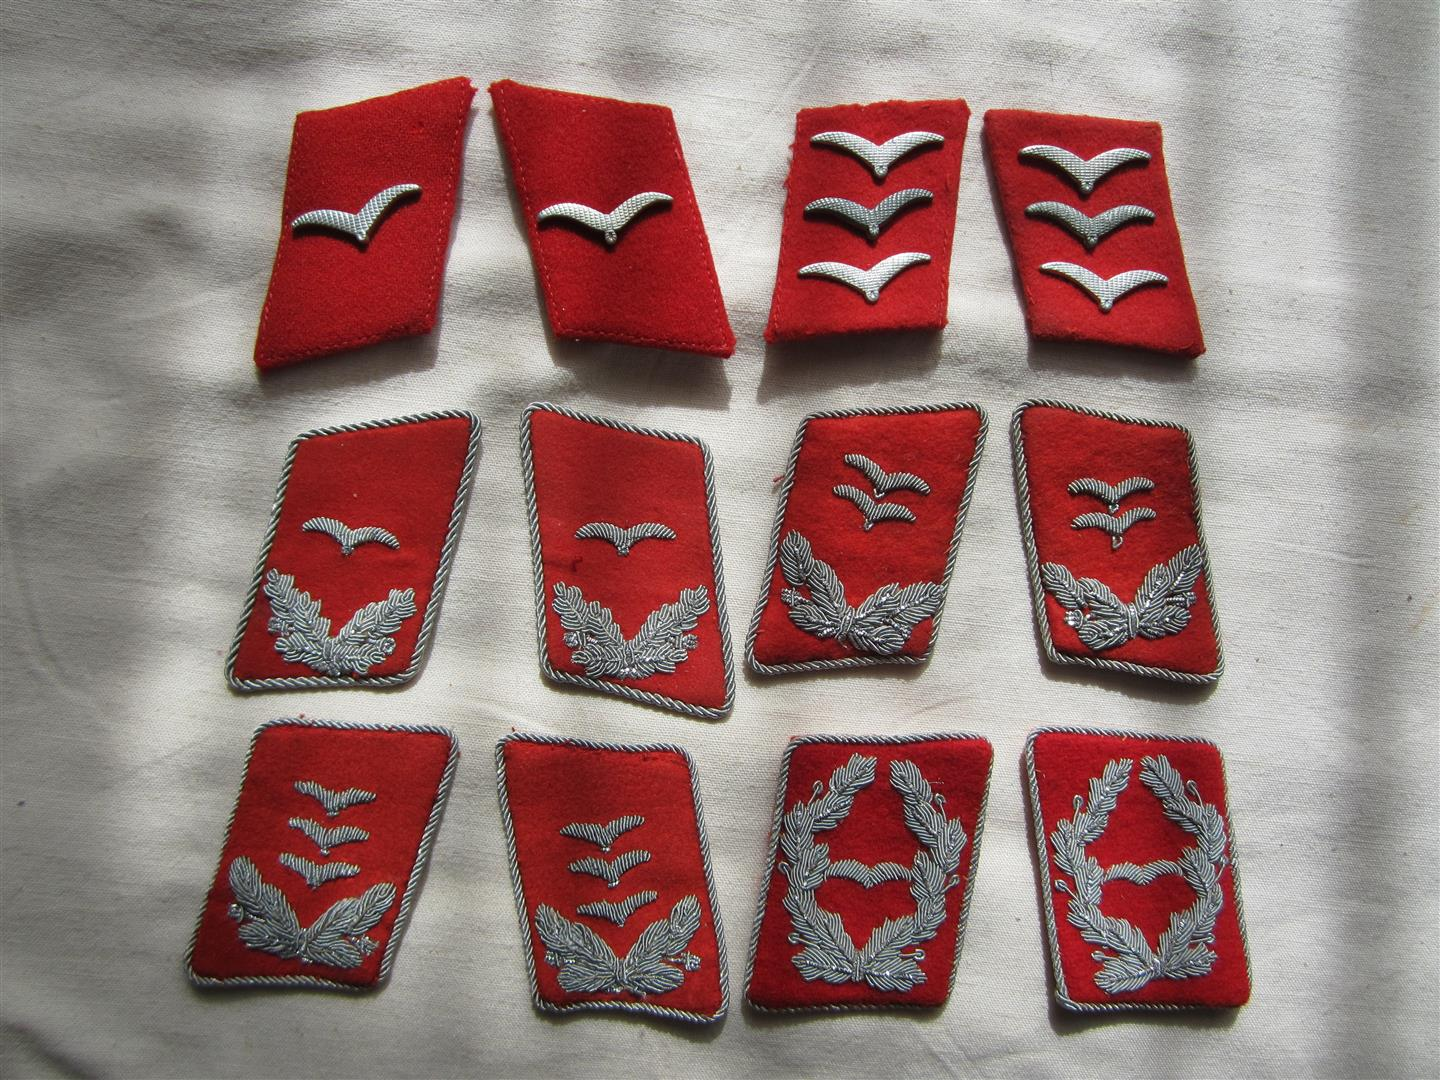 WW2 Collection Of WL Flak Collar Patches